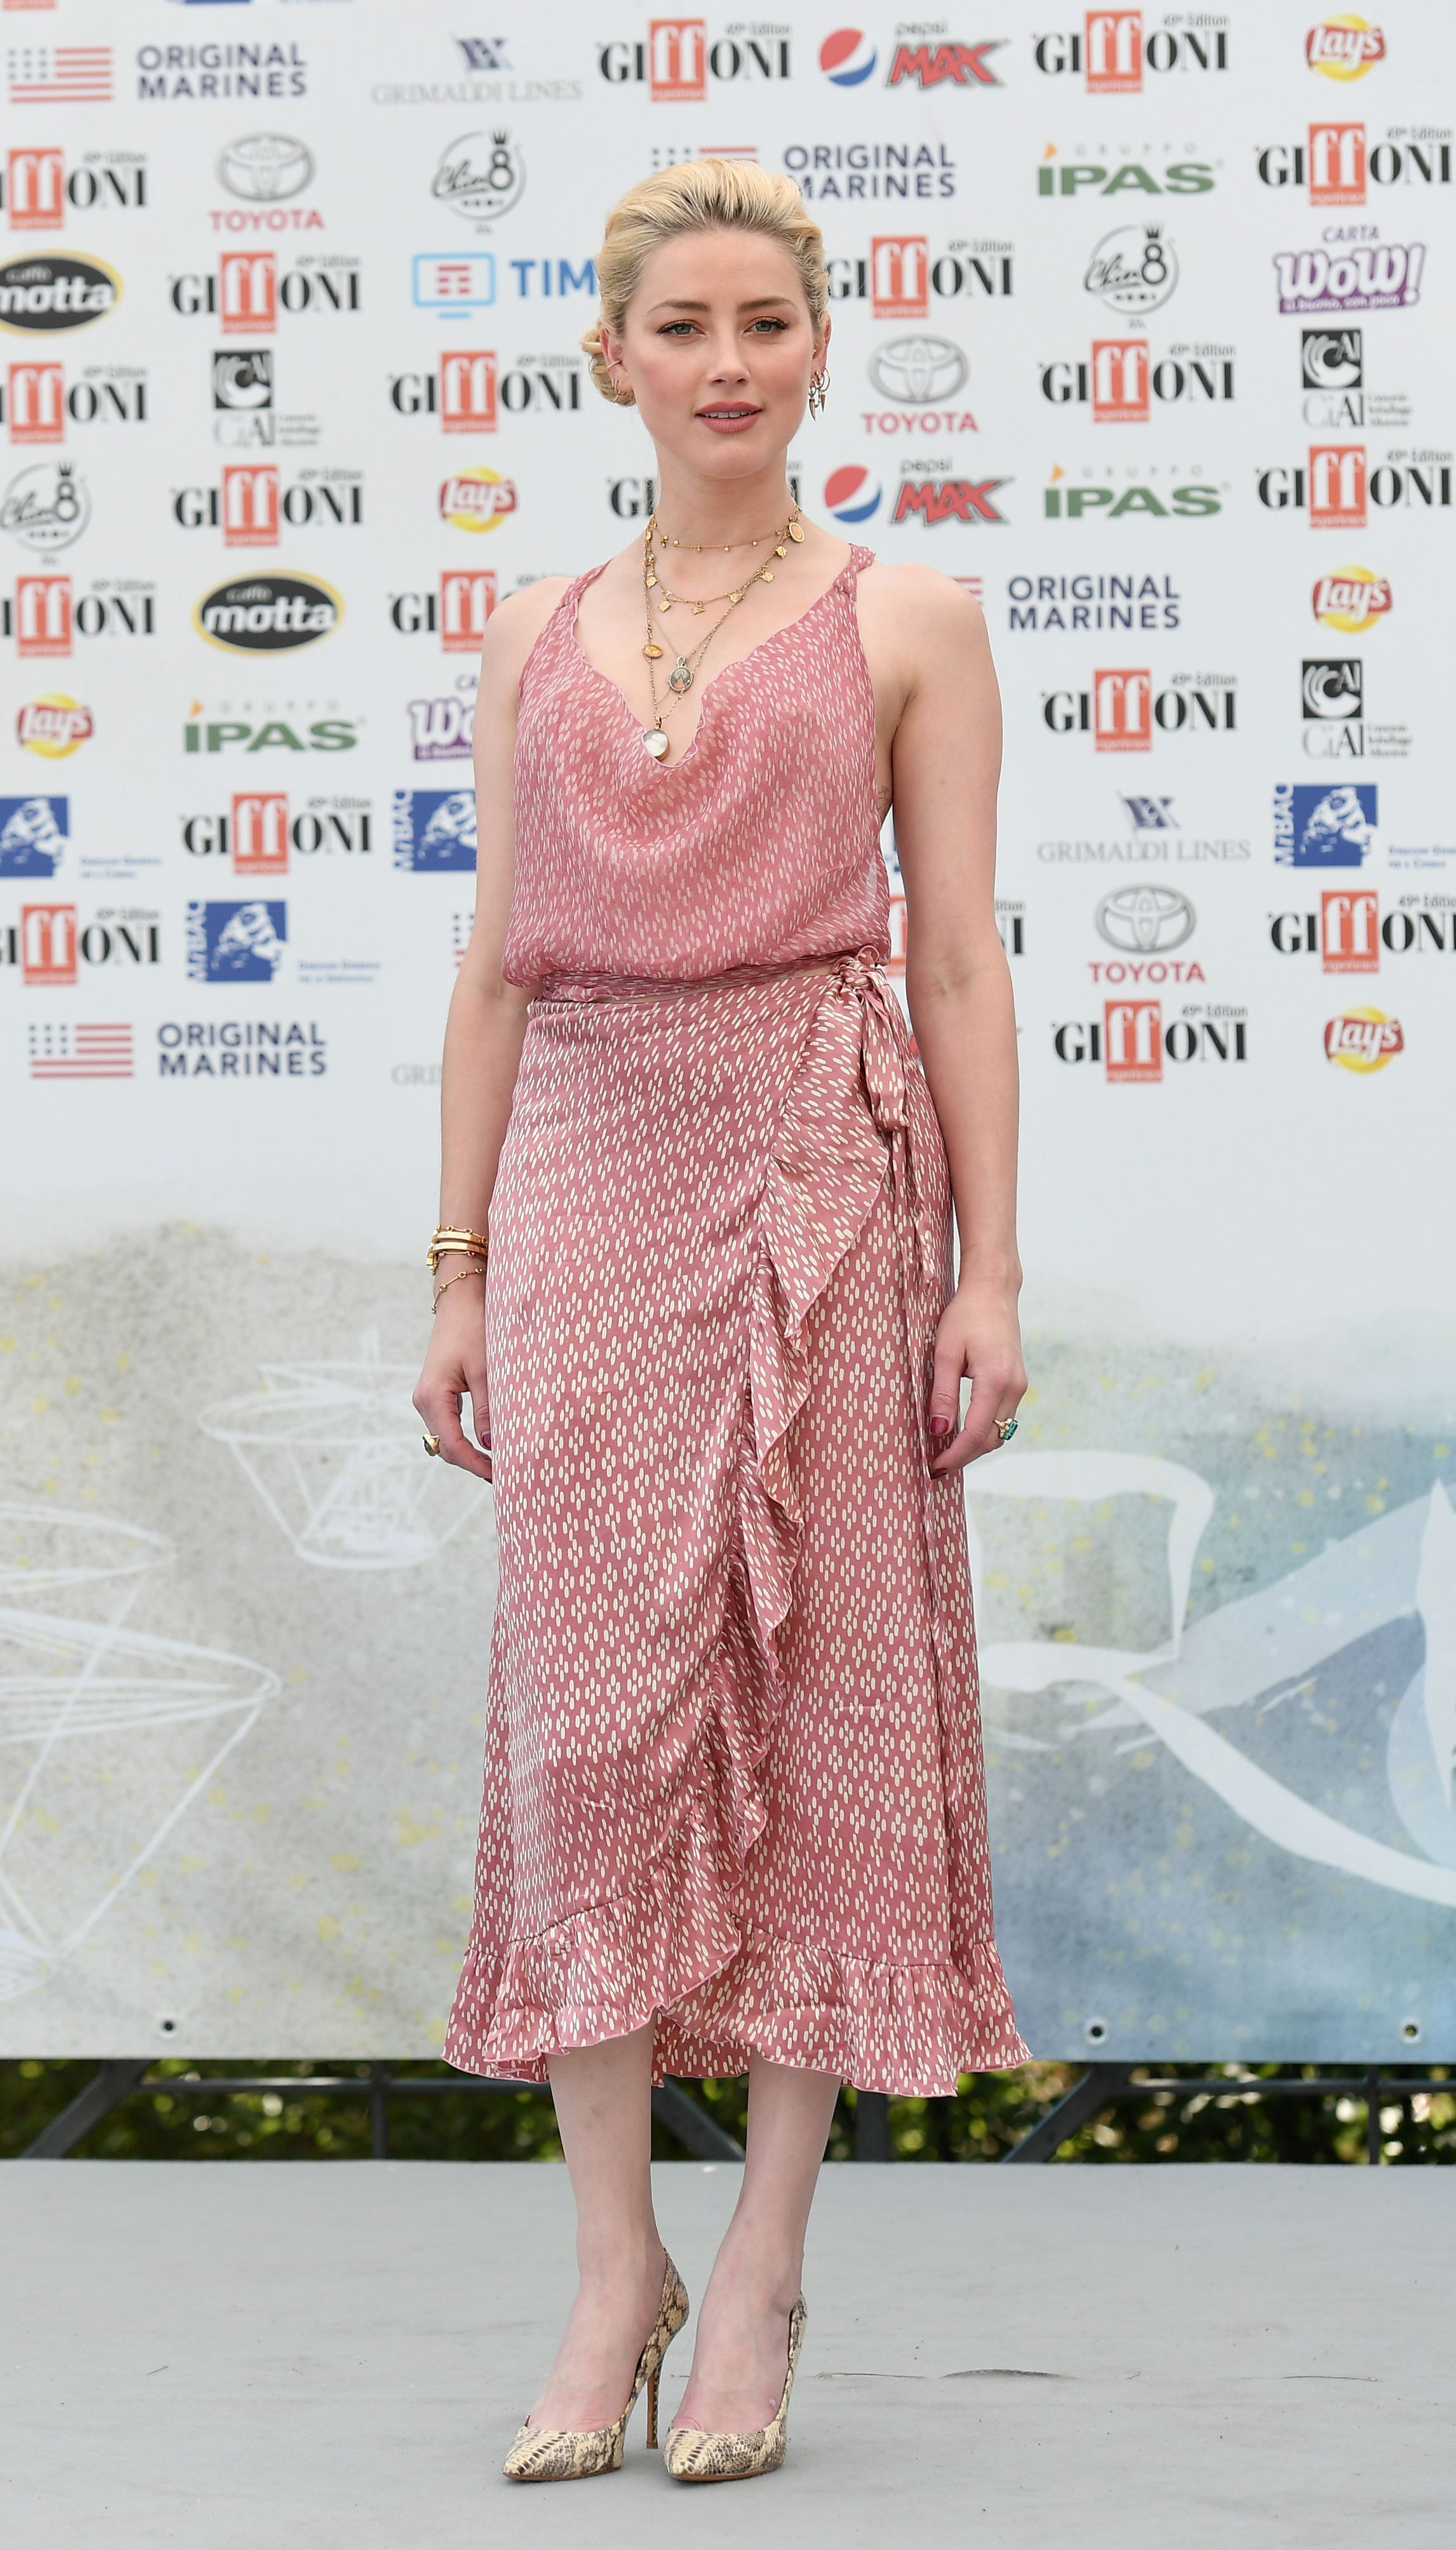 Amber Heard attends the Giffoni Film Festival in Salerno, Italy, on July 25, 2019.